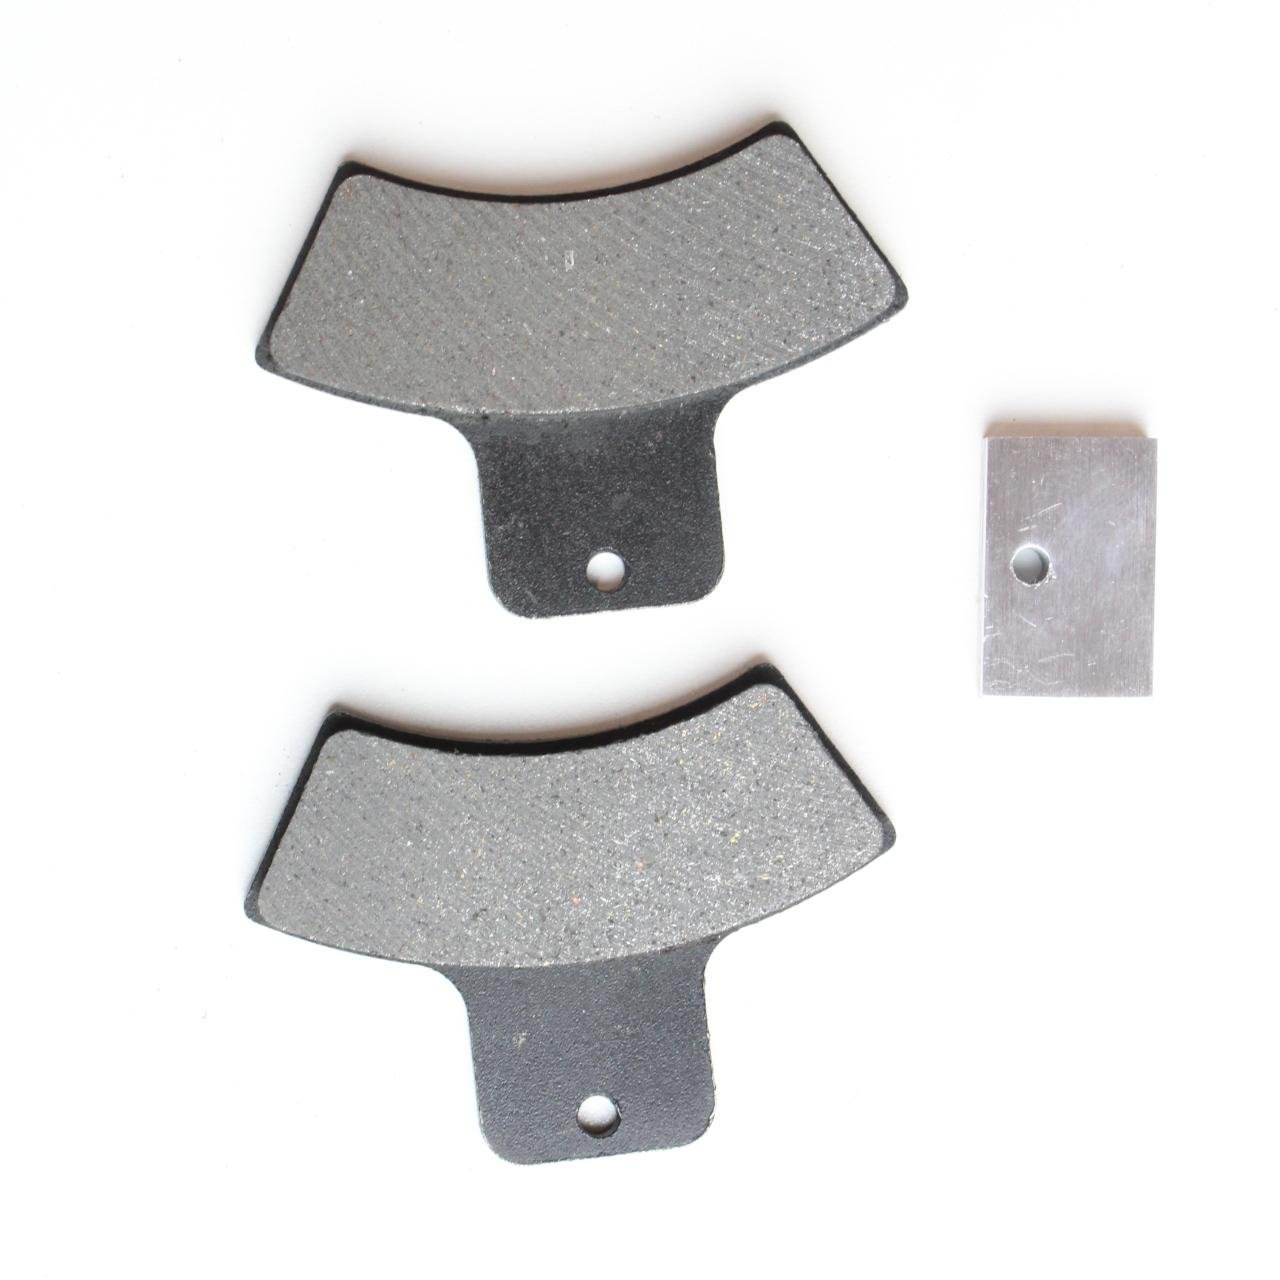 Brake Pad Set 1998-2004 Polaris Magnum Scrambler Sportsman Trail Boss Blazer Worker 250 325 335 400 500 2202411